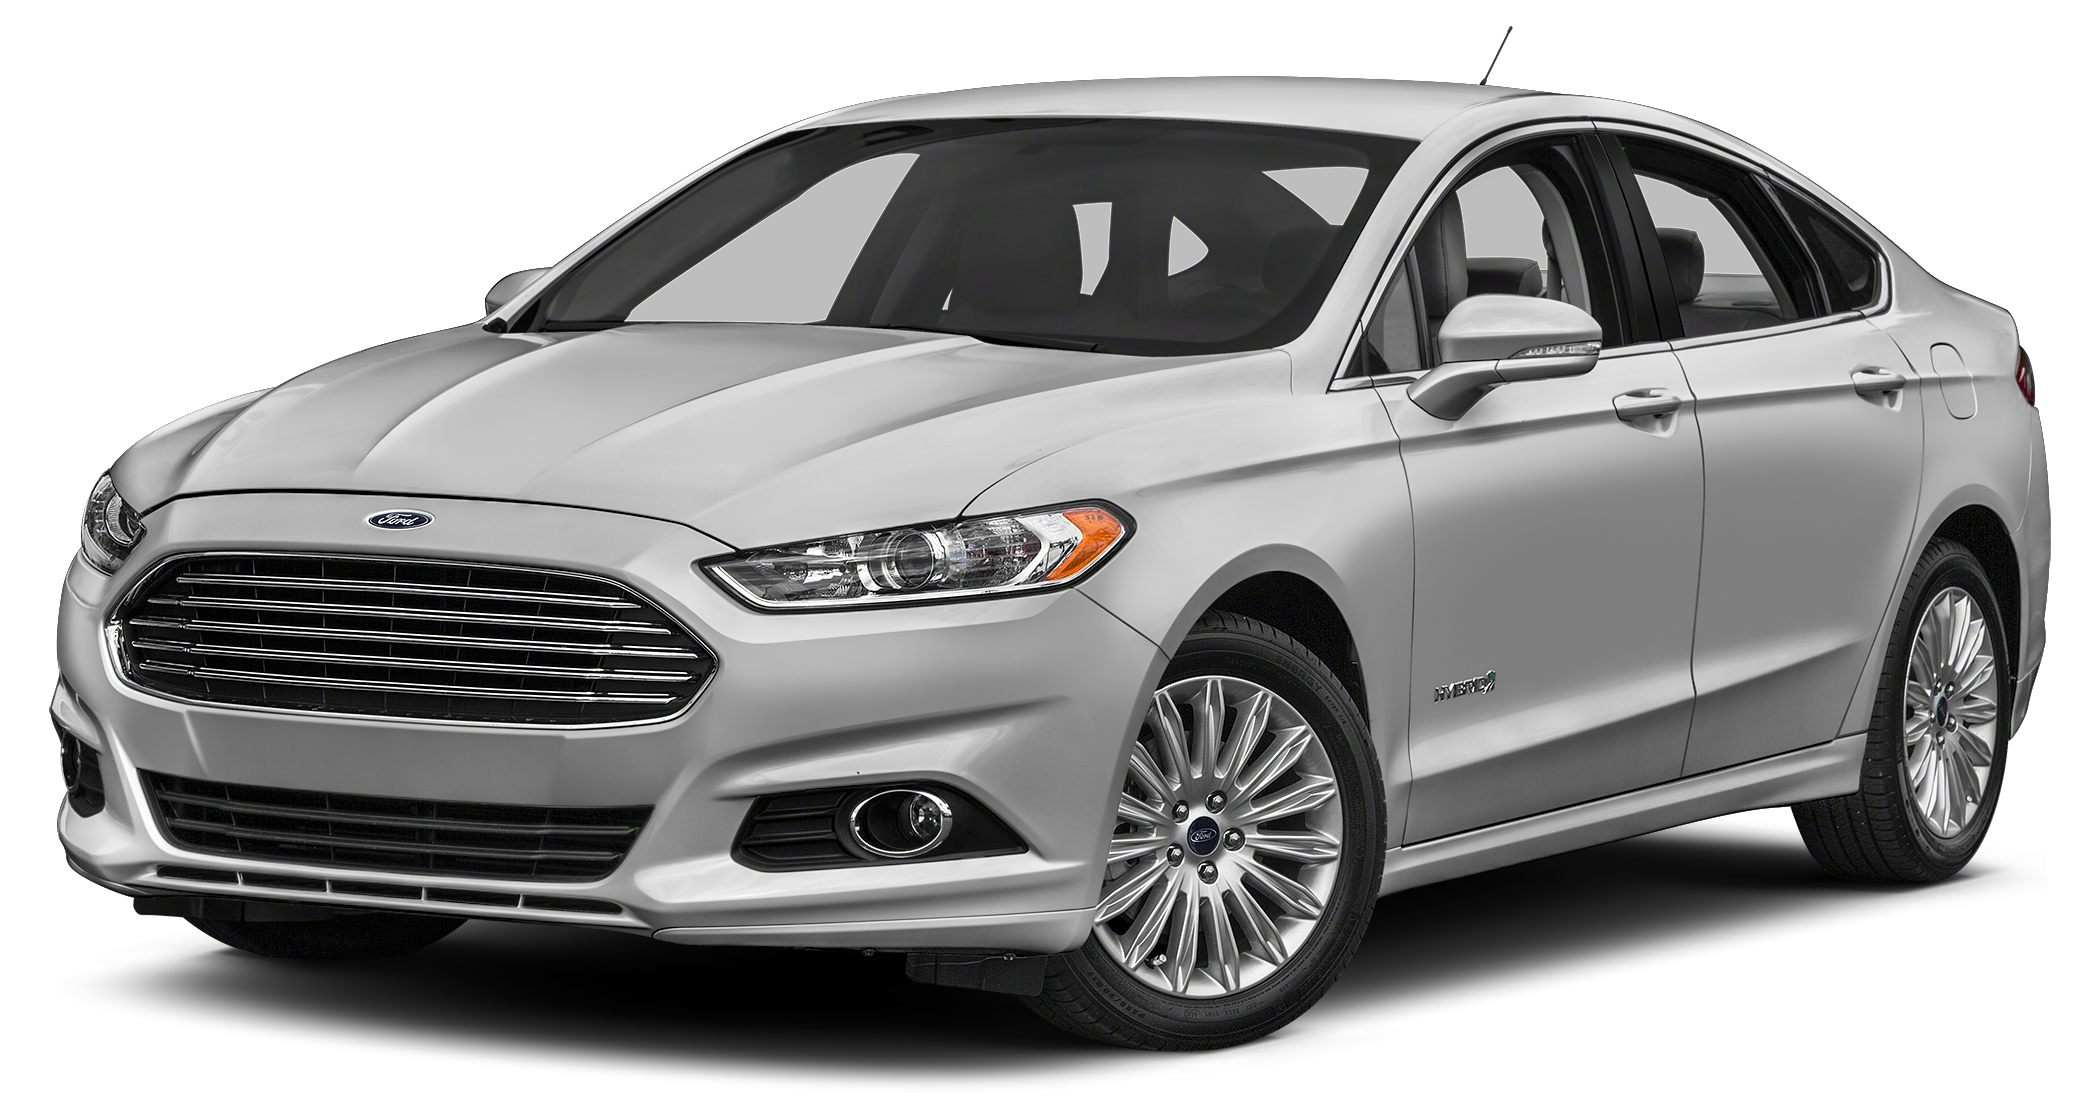 2016 Ford Fusion Hybrid Titanium The Ford Fusion has the upscale style and front grille that resem